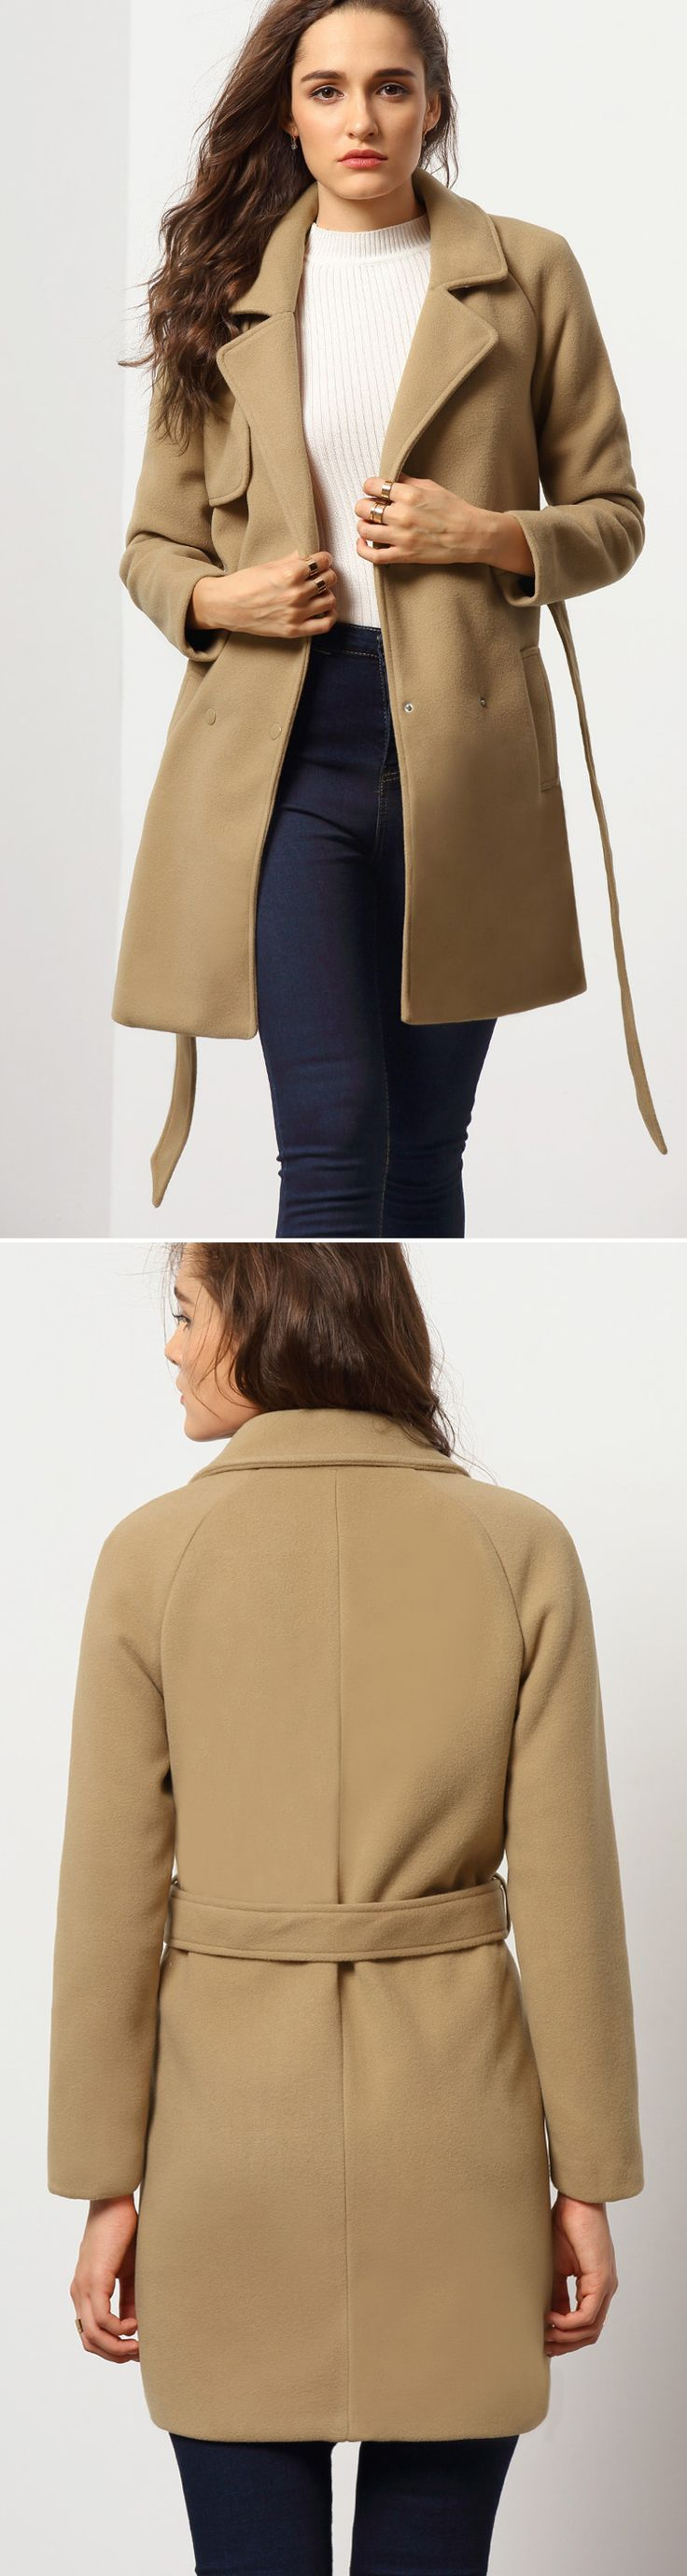 Camel Long Sleeve Lapel Coat. $31.99 for sale at romwe.com. Click &sign up for more discount!